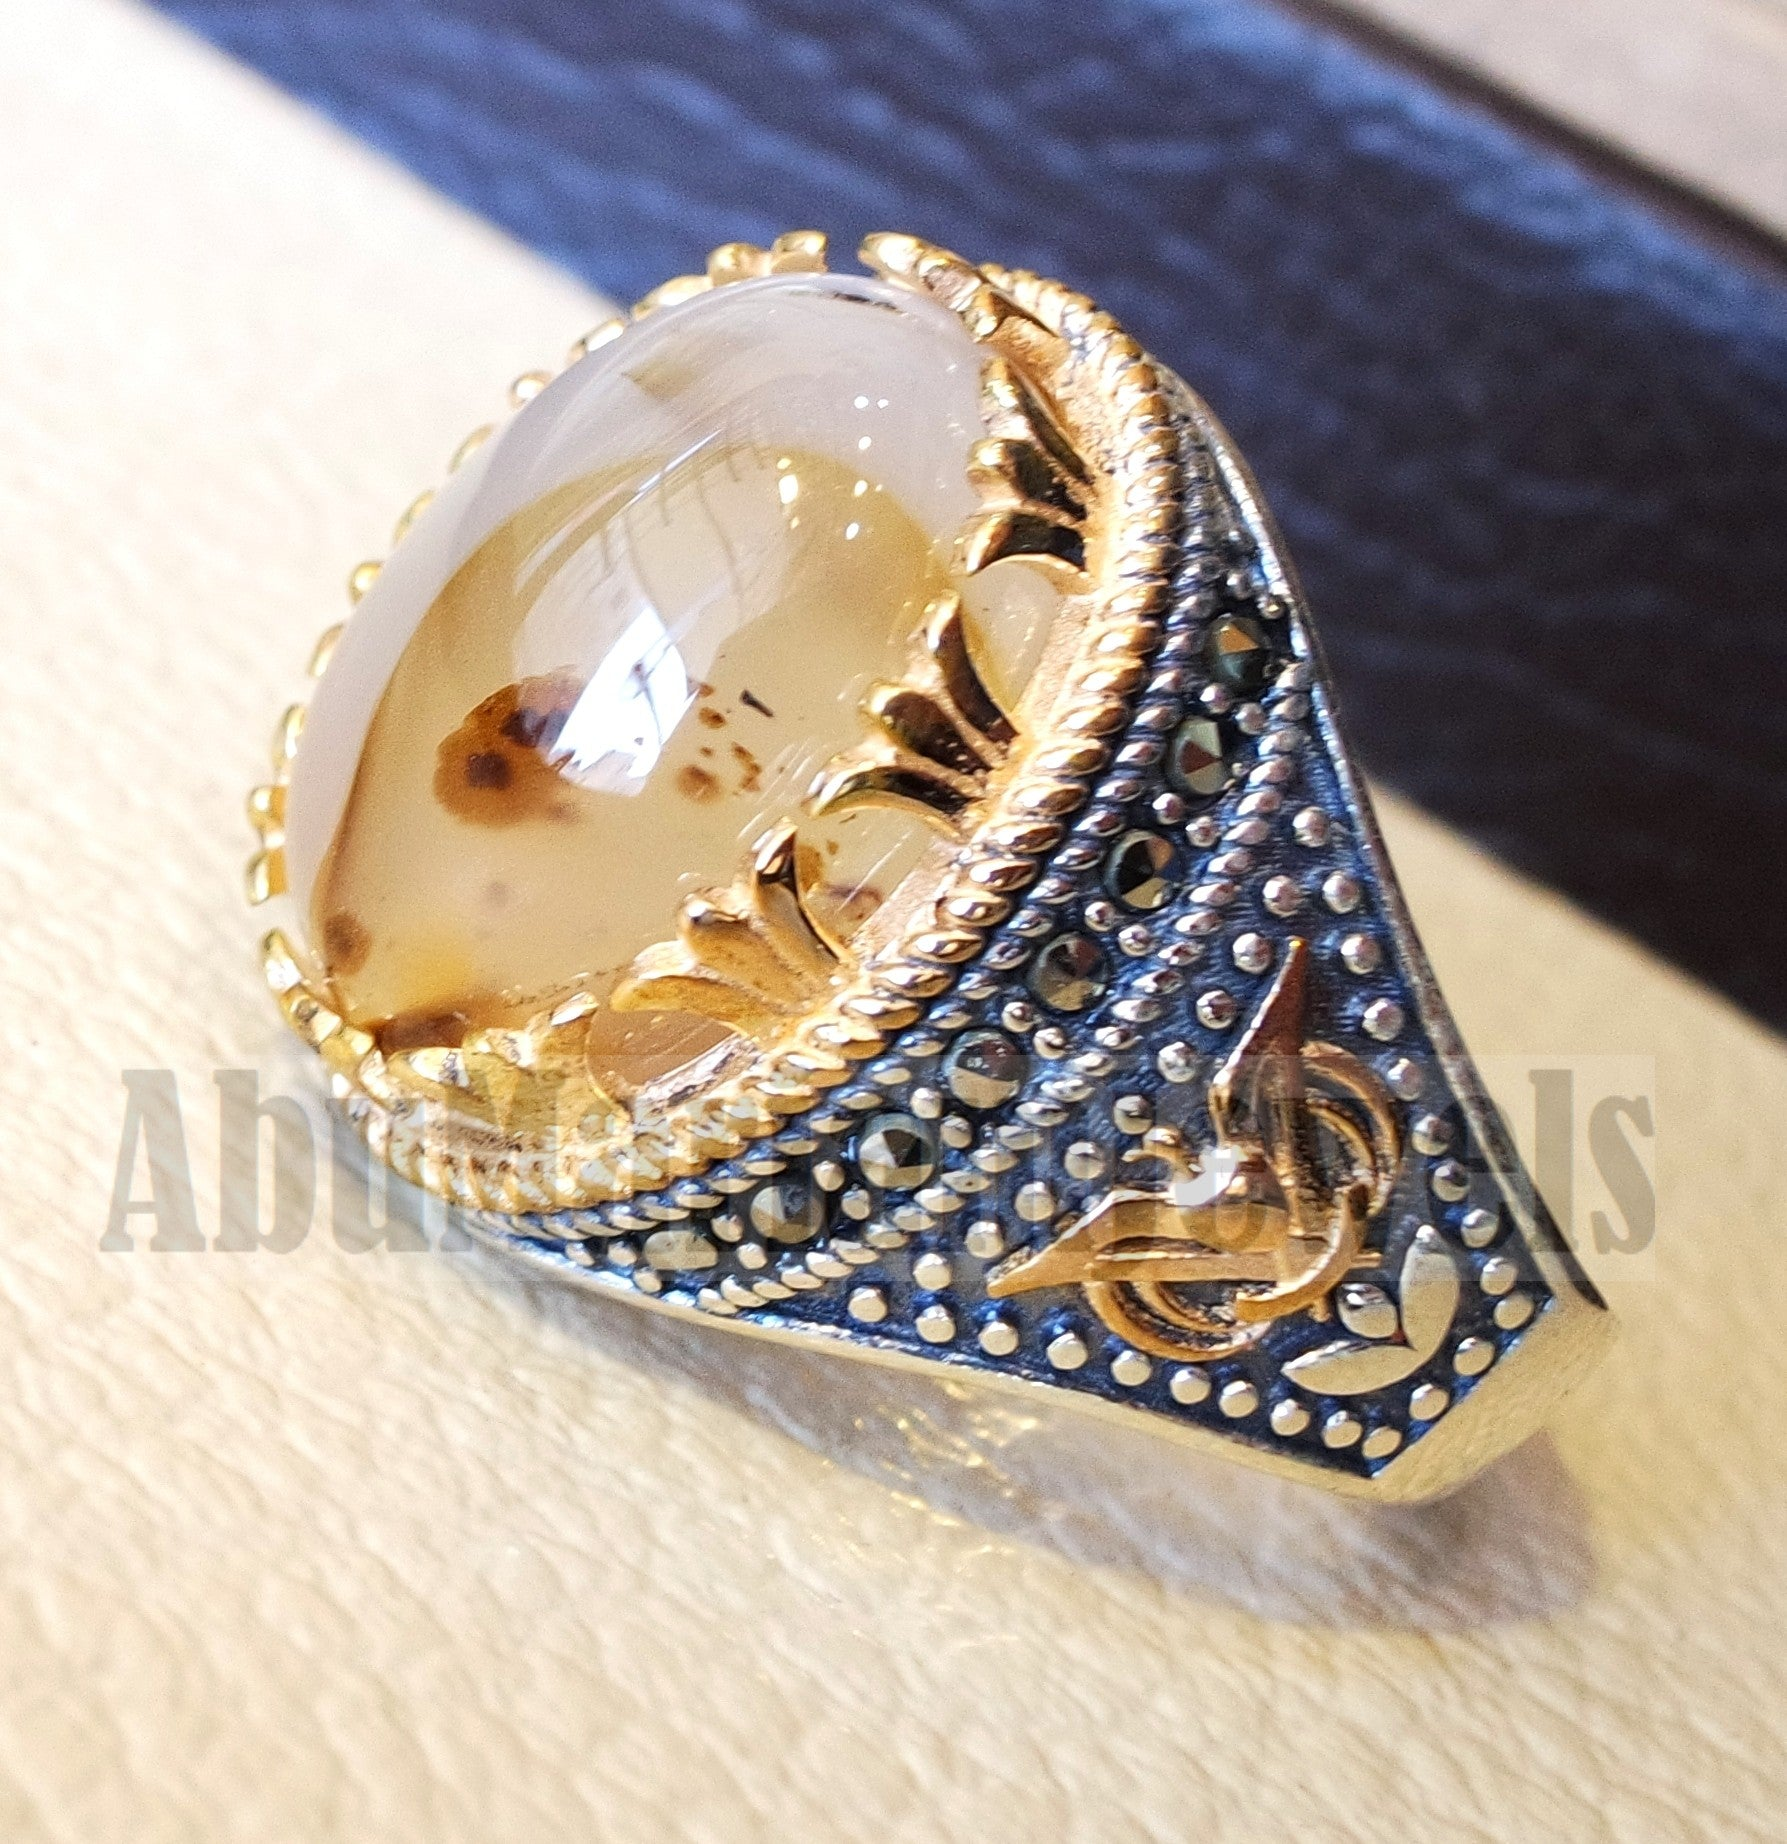 Oval yamani aqeeq natural semi precious multi color agate gem men ring sterling silver 925 and bronze jewelry all sizes  1007 عقيق يماني